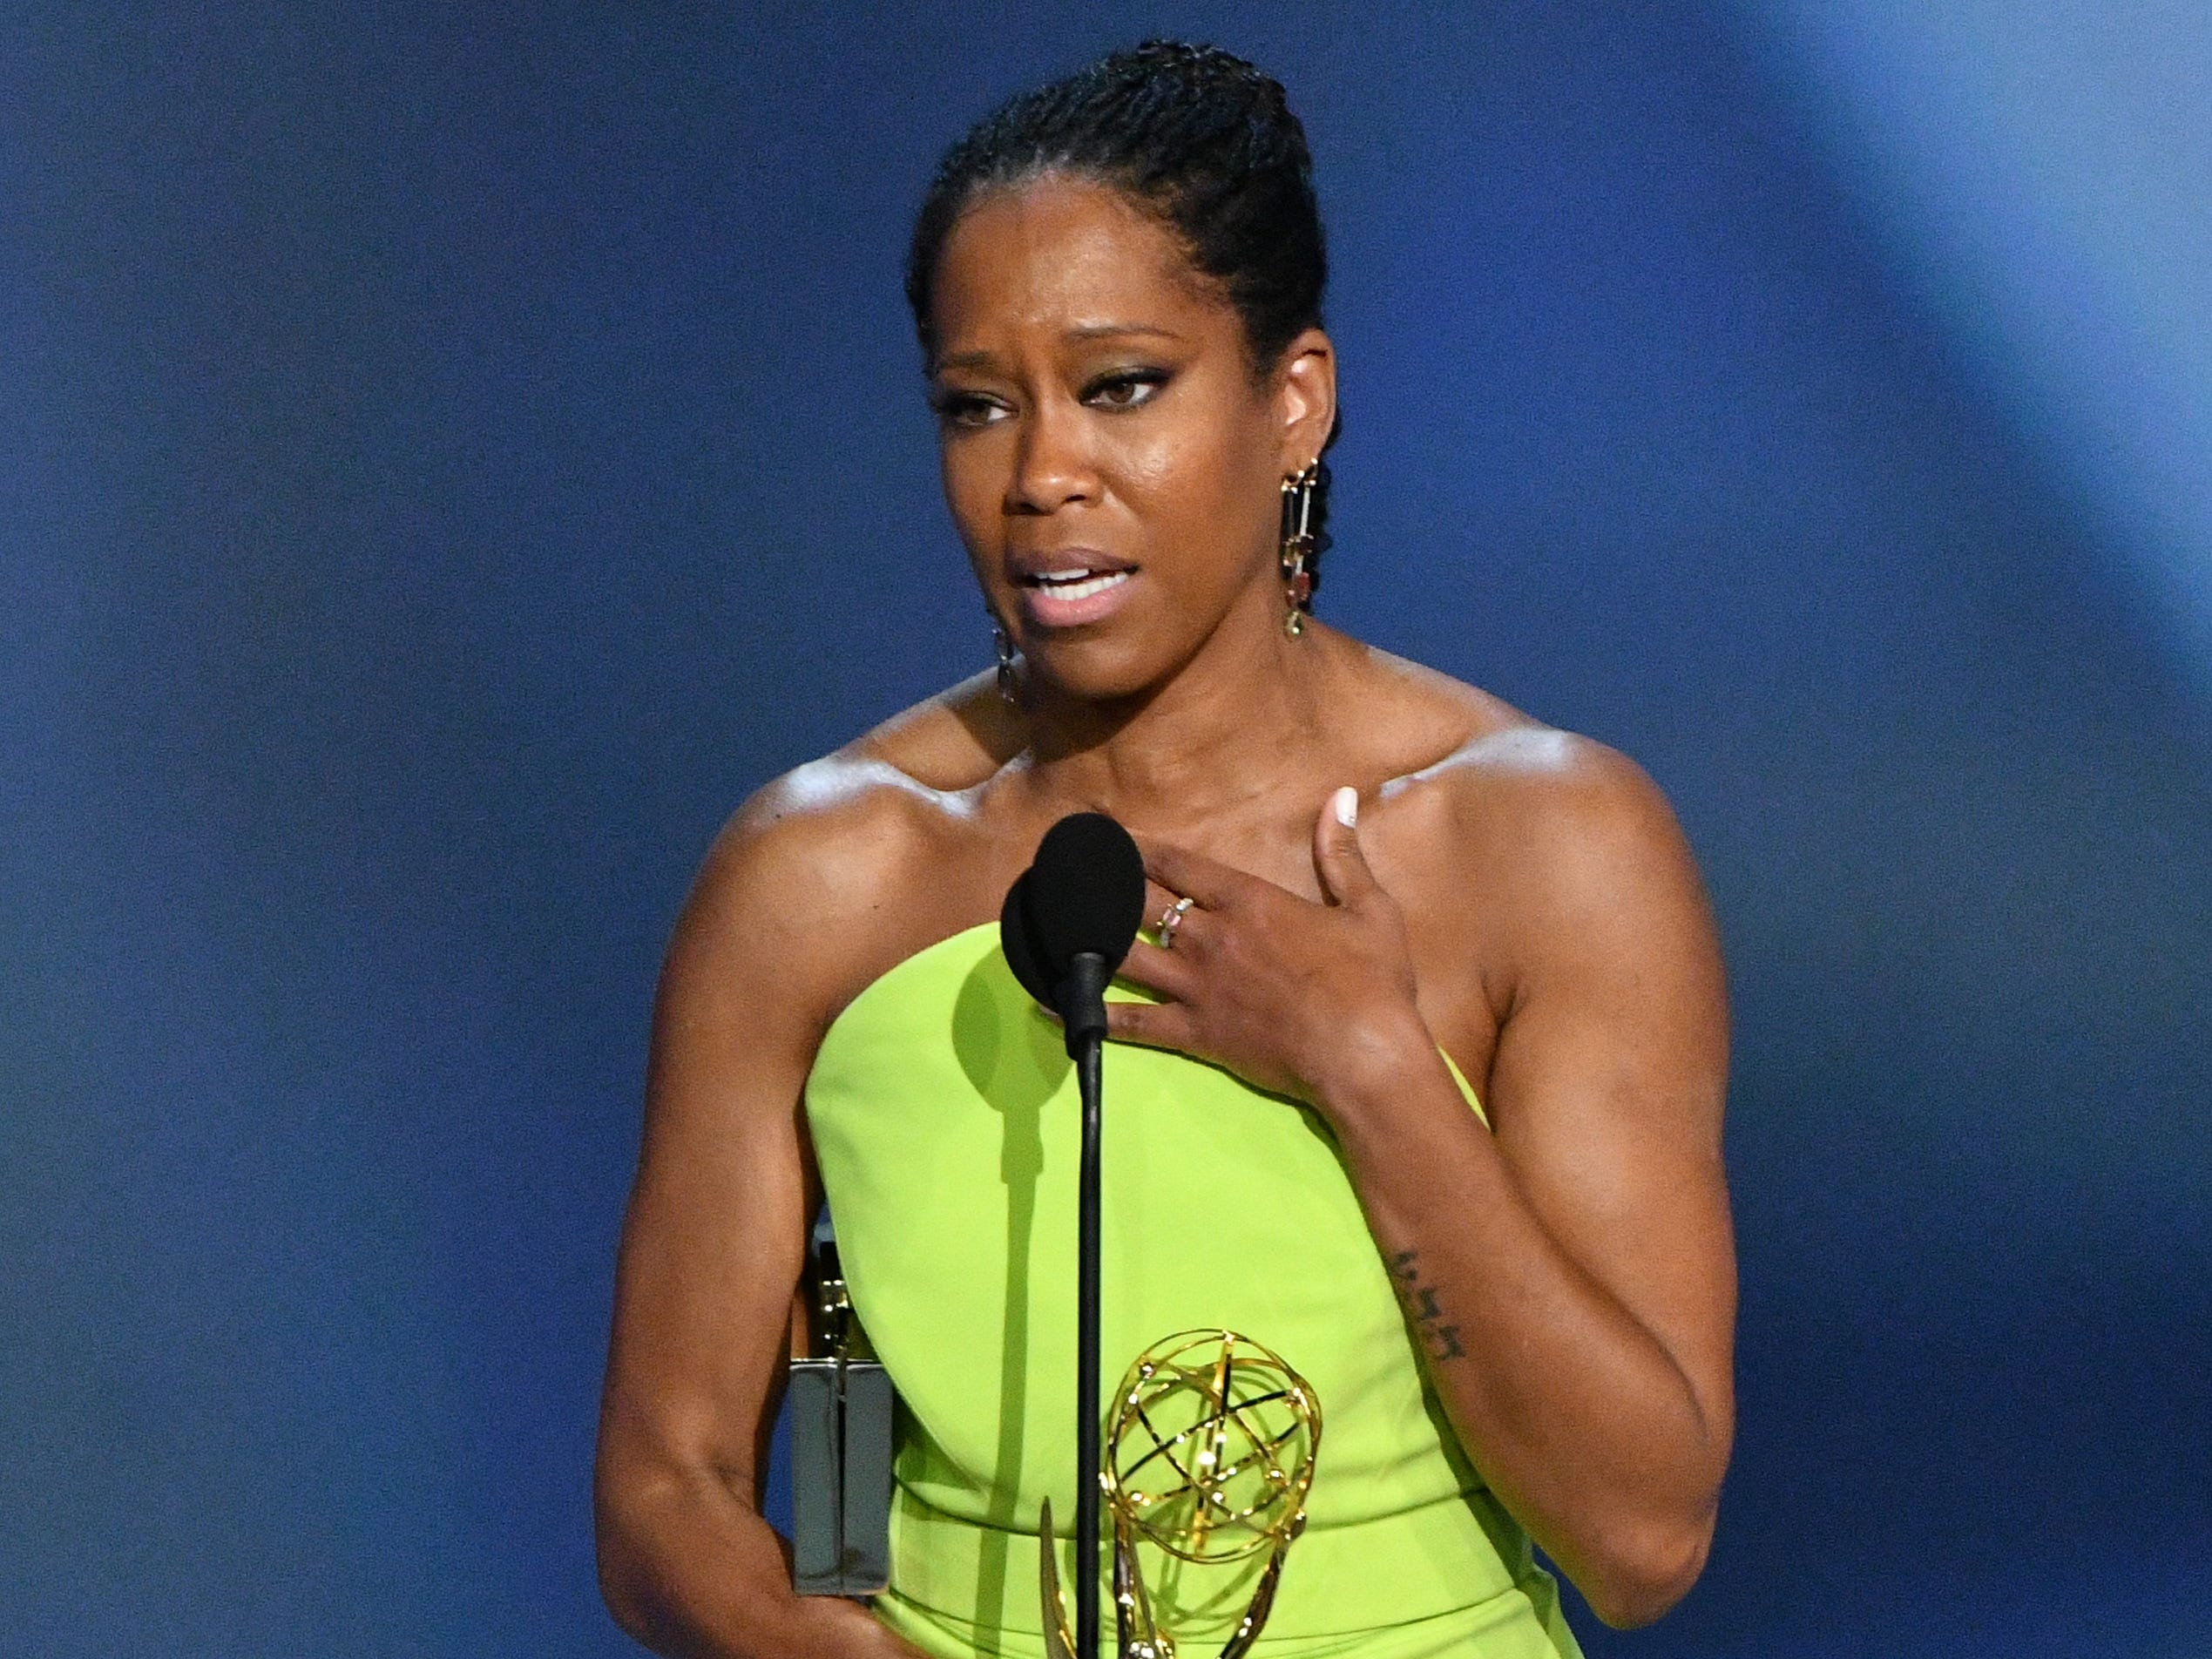 """Regina King accepts the award for lead actress in a limited series or movie for her role in """"Seven Seconds"""" on Netflix."""